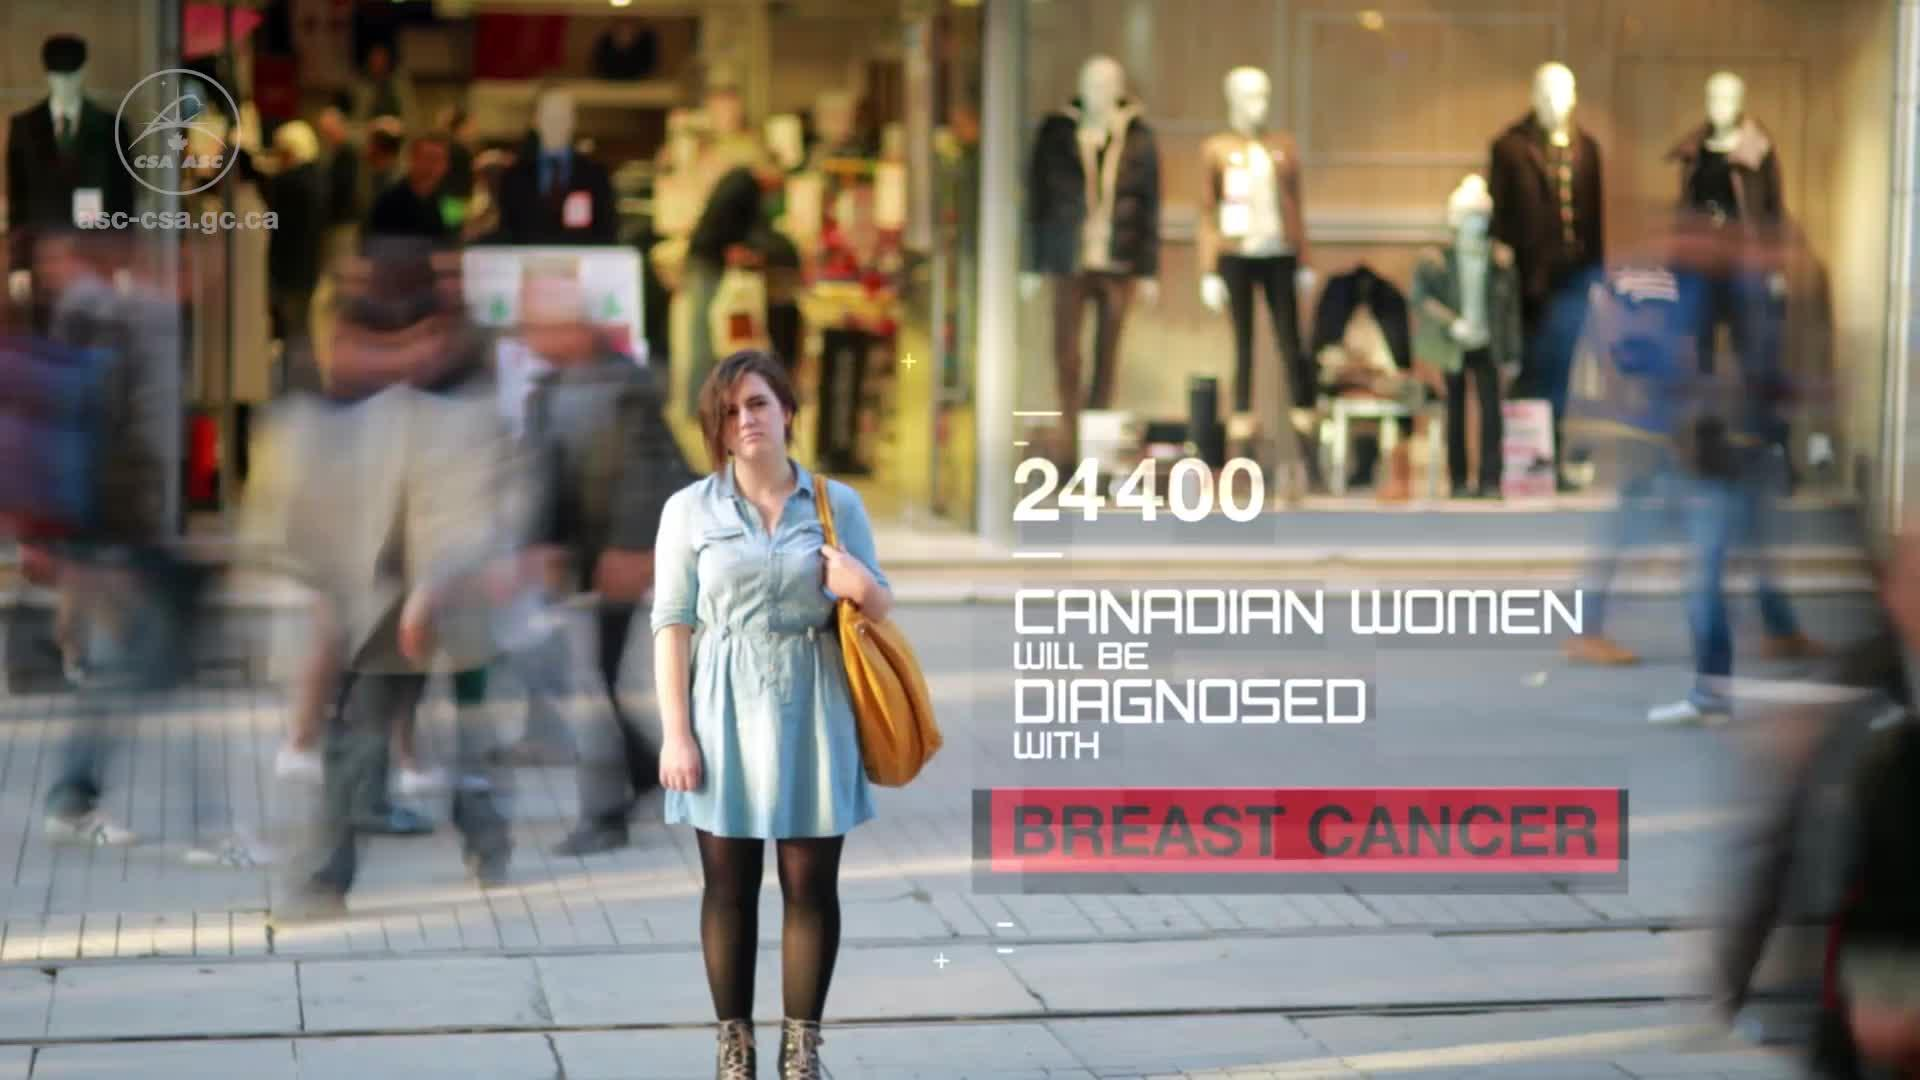 Canadian Space technology helps breast cancer patients